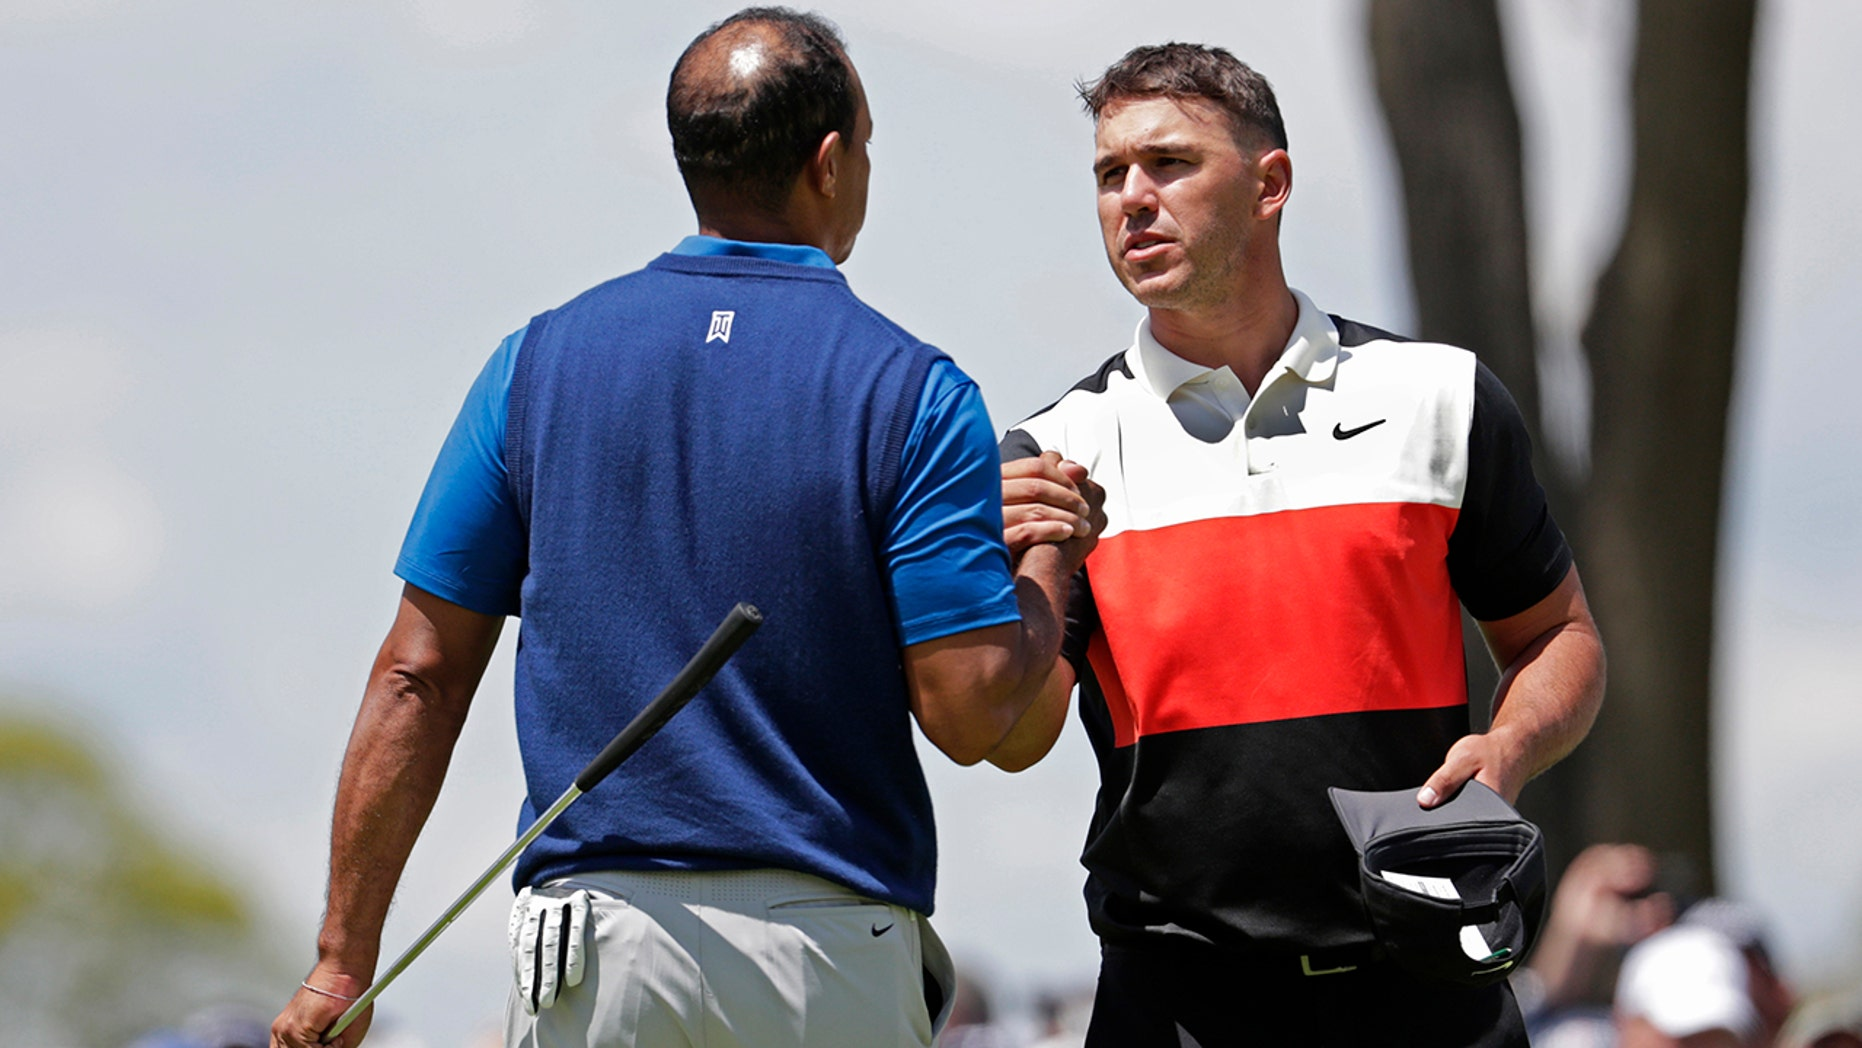 "Brooks Koepka, right, shakes hands with Tiger Woods after finishing the first round of the PGA Championship golf tournament, Thursday, May 1<div class=""e3lan e3lan-in-post1""><script async src=""//pagead2.googlesyndication.com/pagead/js/adsbygoogle.js""></script>